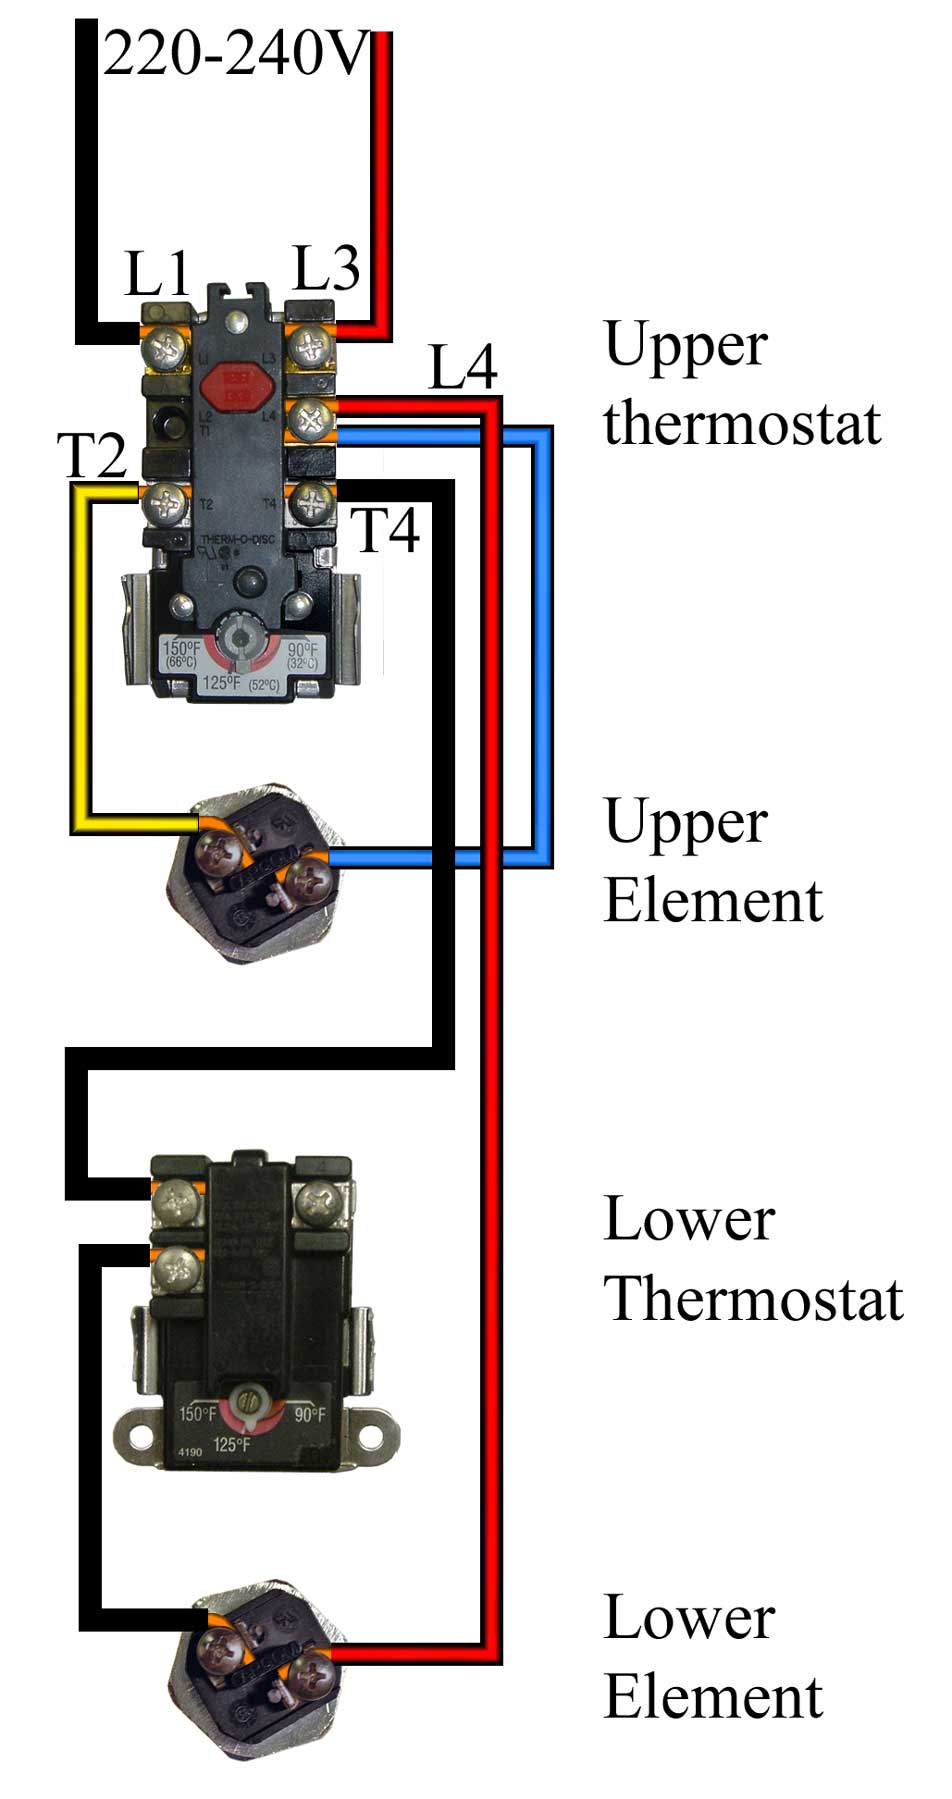 Off -peak water heater thermostats